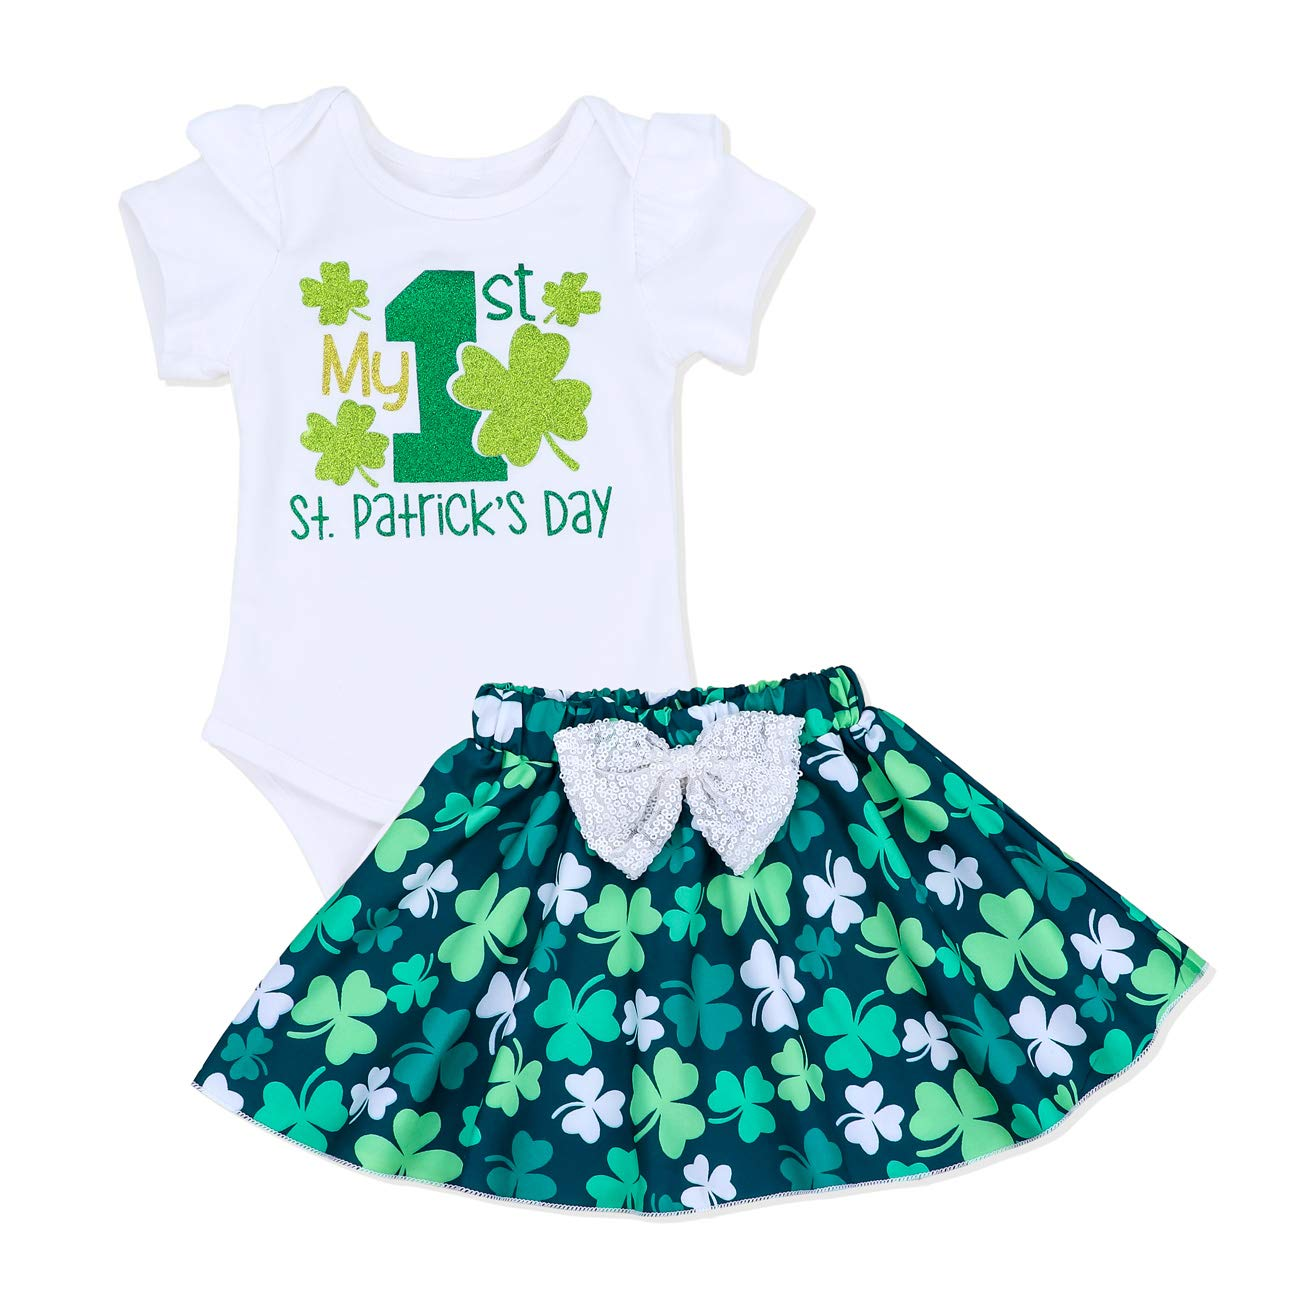 Newborn Baby Girl My 1st St. Patrick's Day Outfit Lucky Clover Romper+ Short Skirt 2PCS Outfit Set